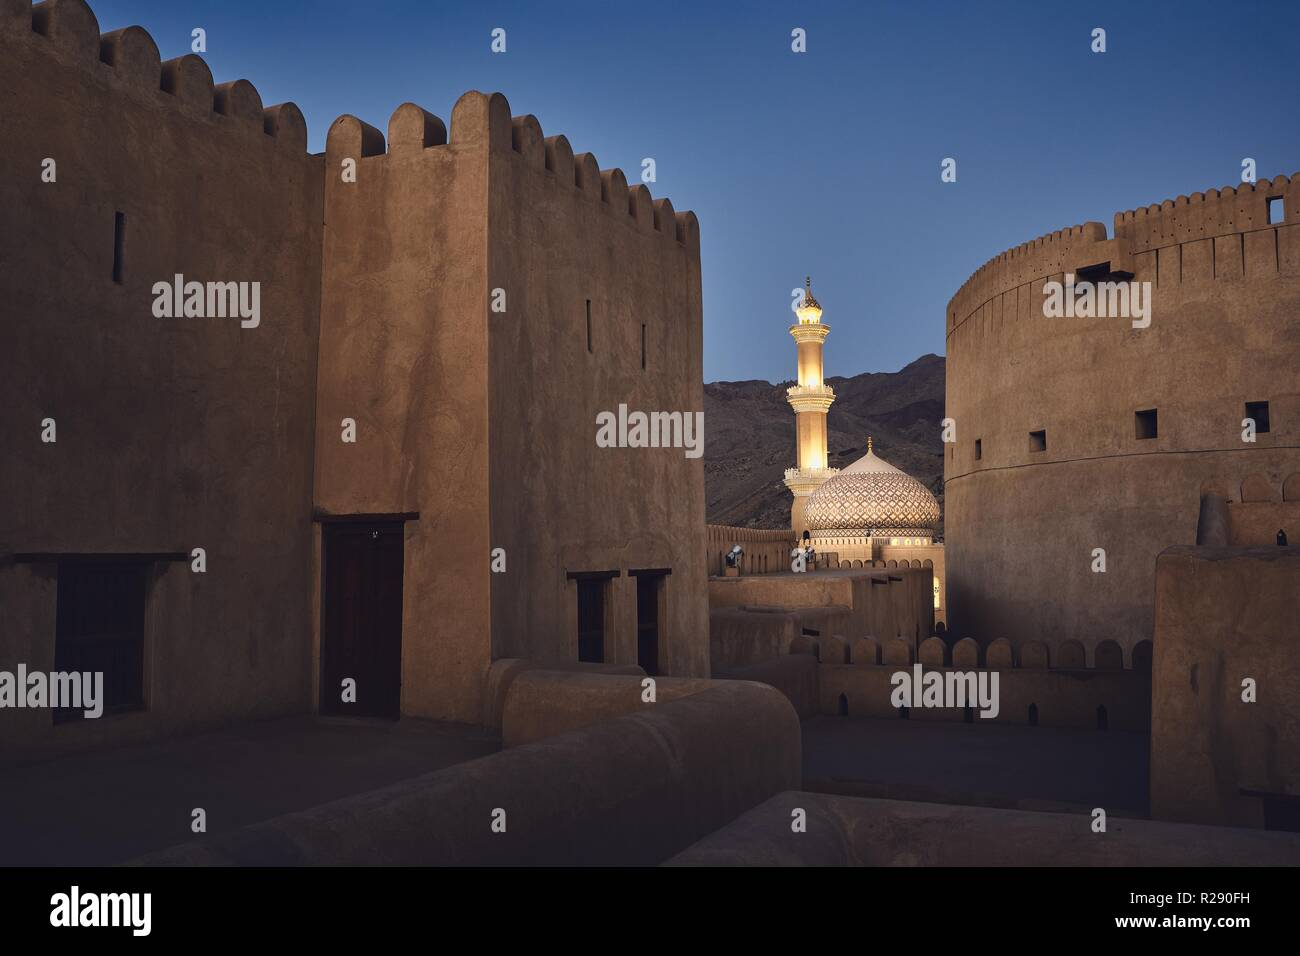 Evening view between watchtowers of historic fort to illuminated mosque. Nizwa, Sultanate of Oman. - Stock Image